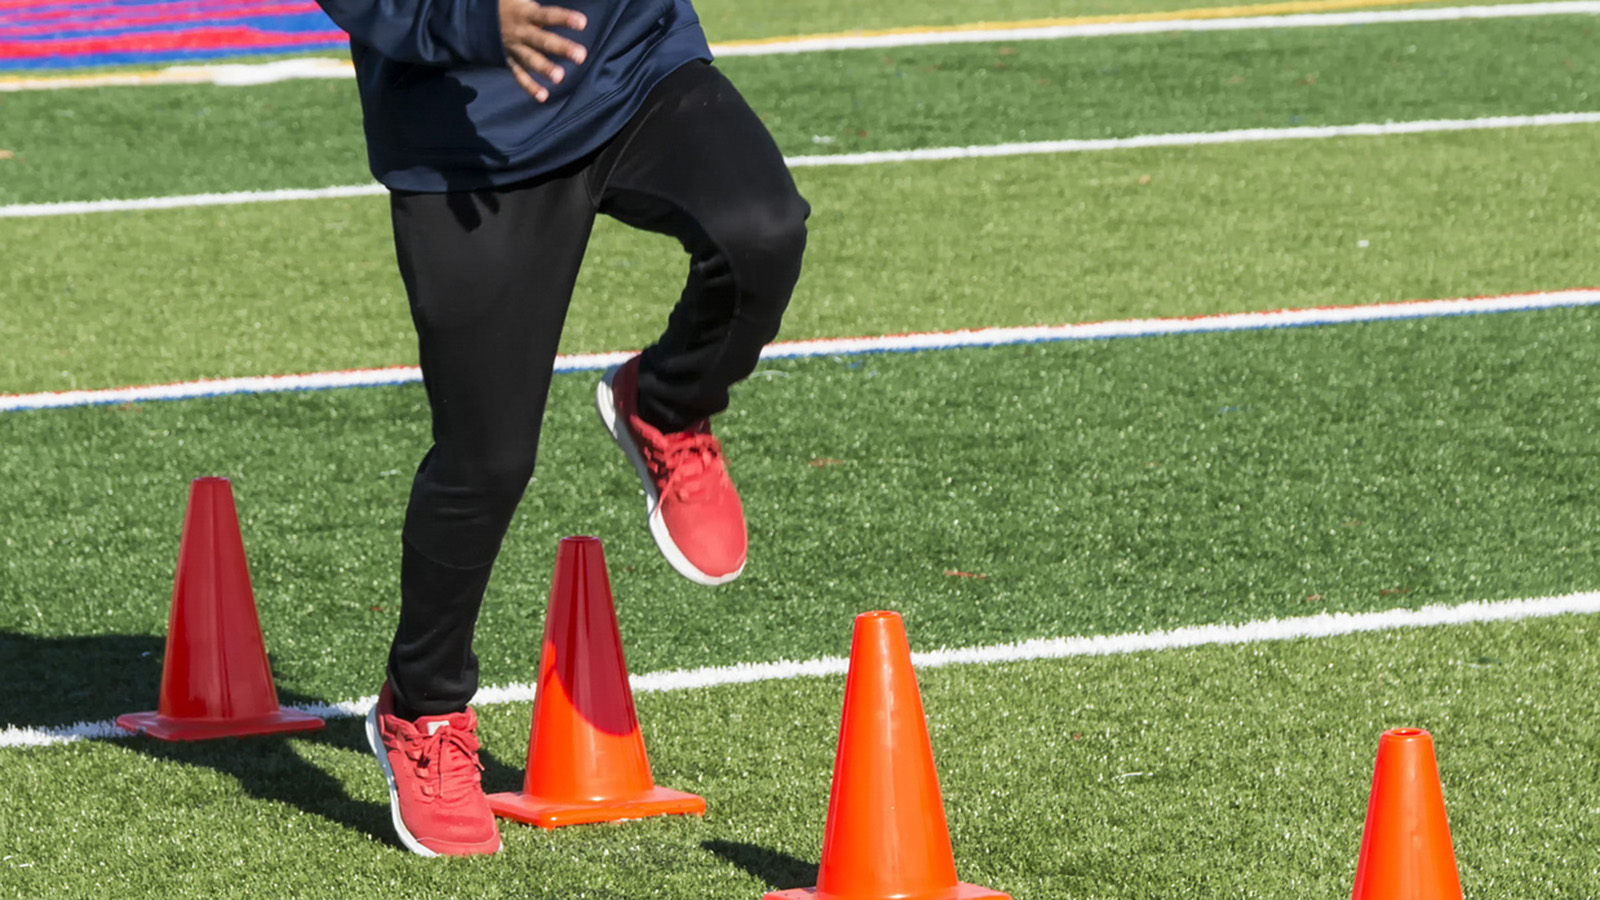 Cone Drills for Football Speed